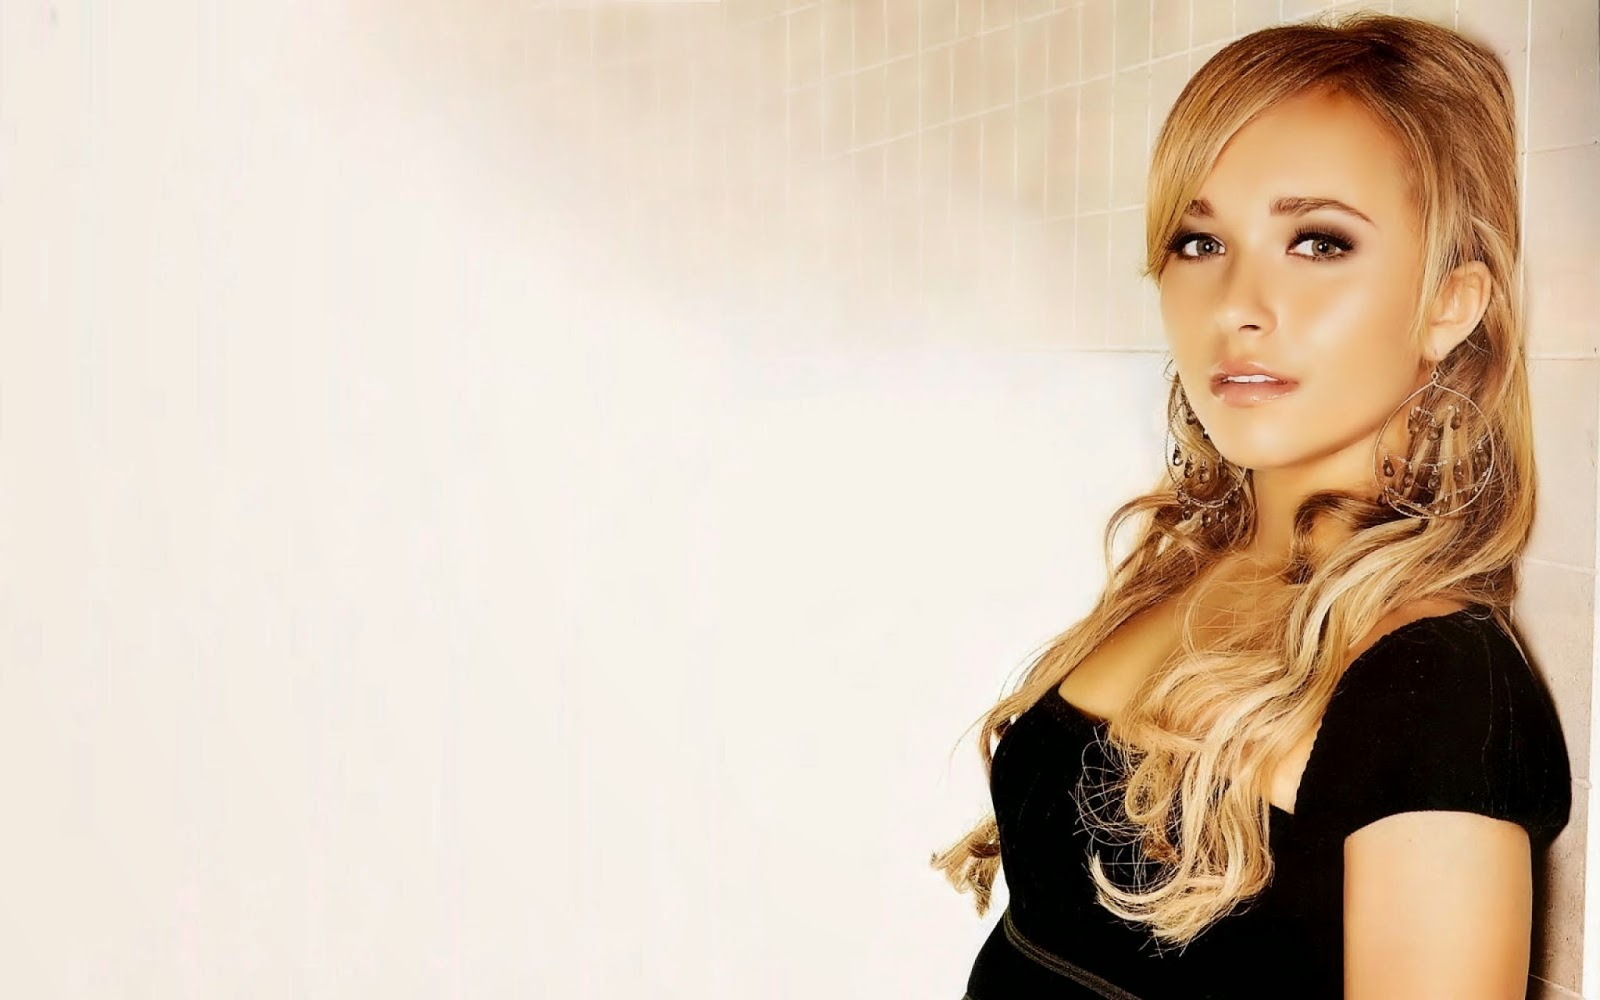 Hayden Panettiere Best Hollywood Actress wallpapers